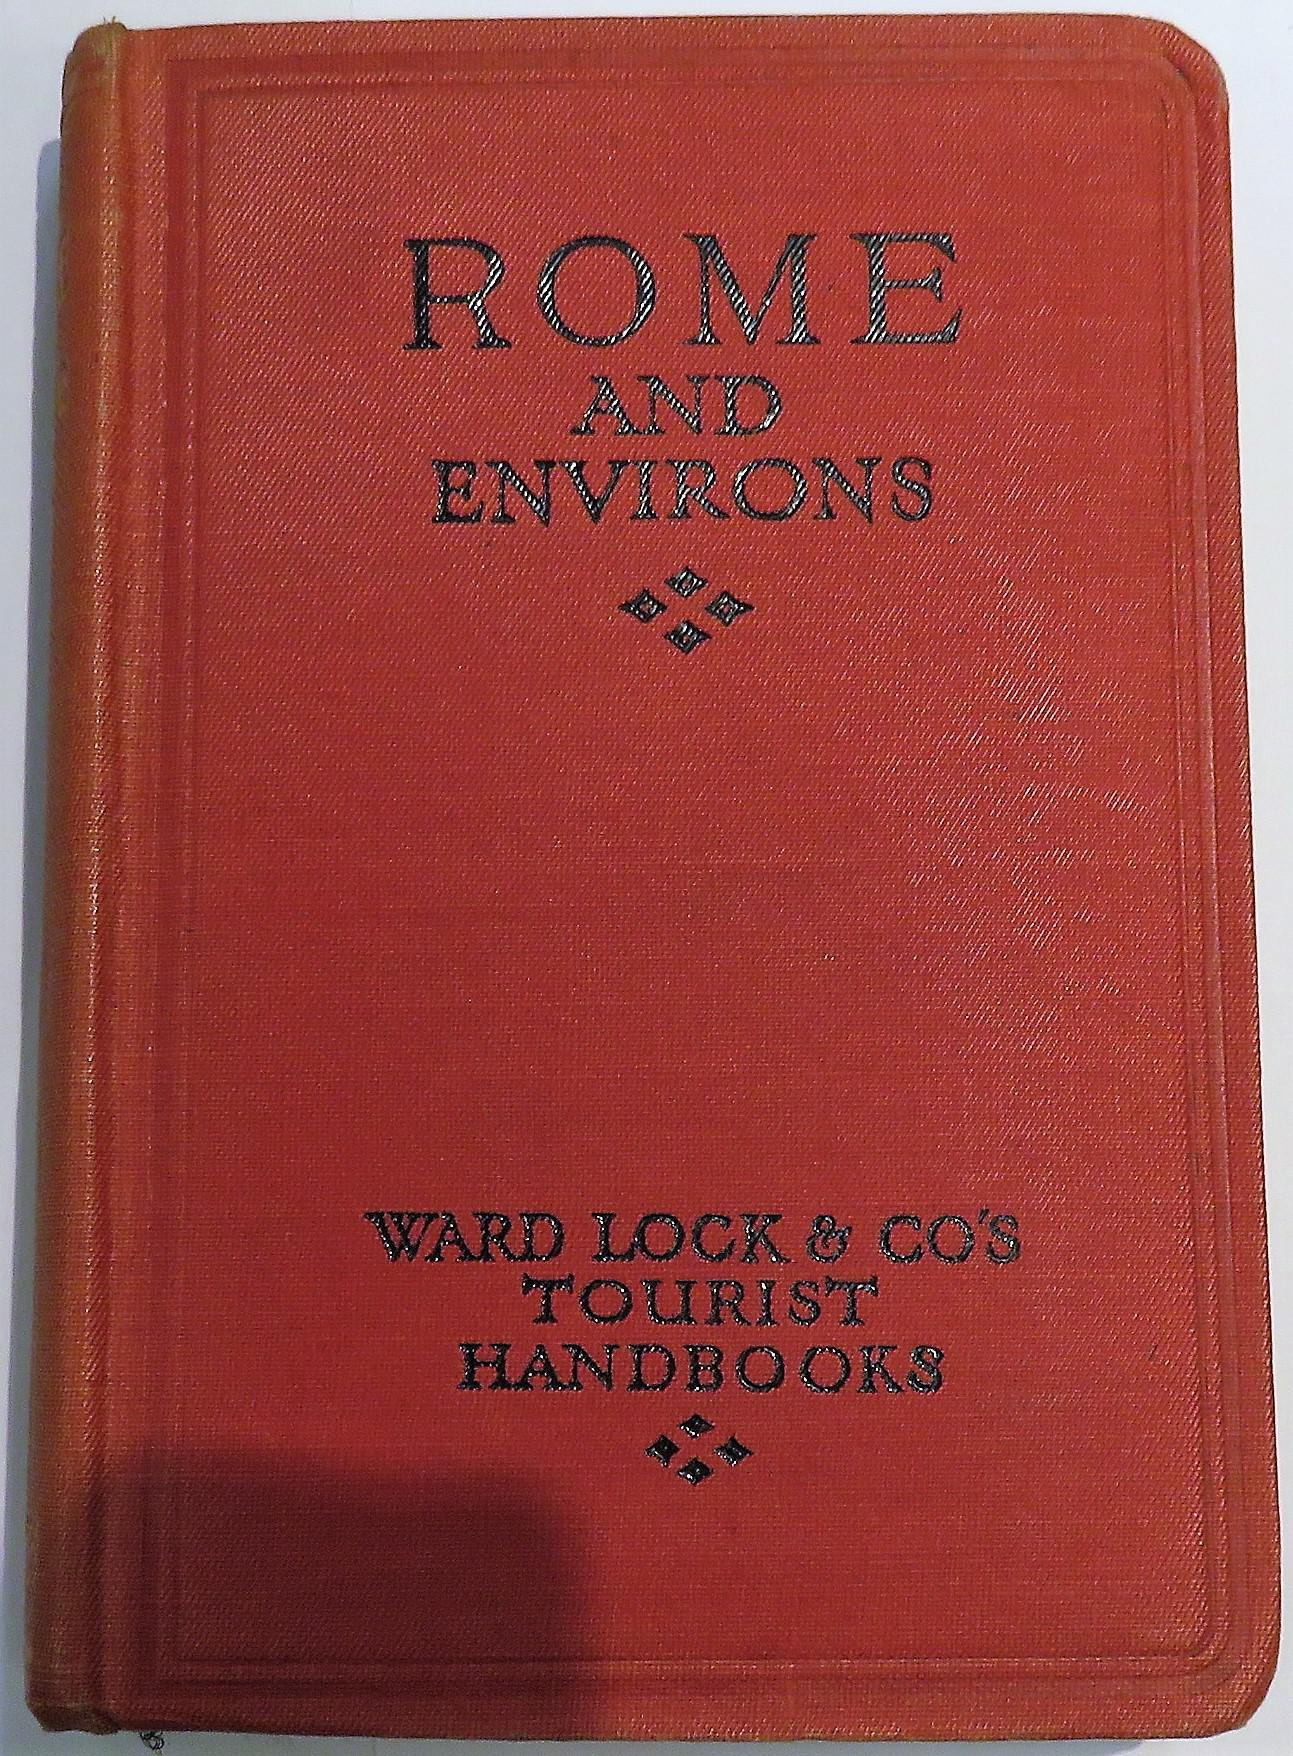 Rome and Environs